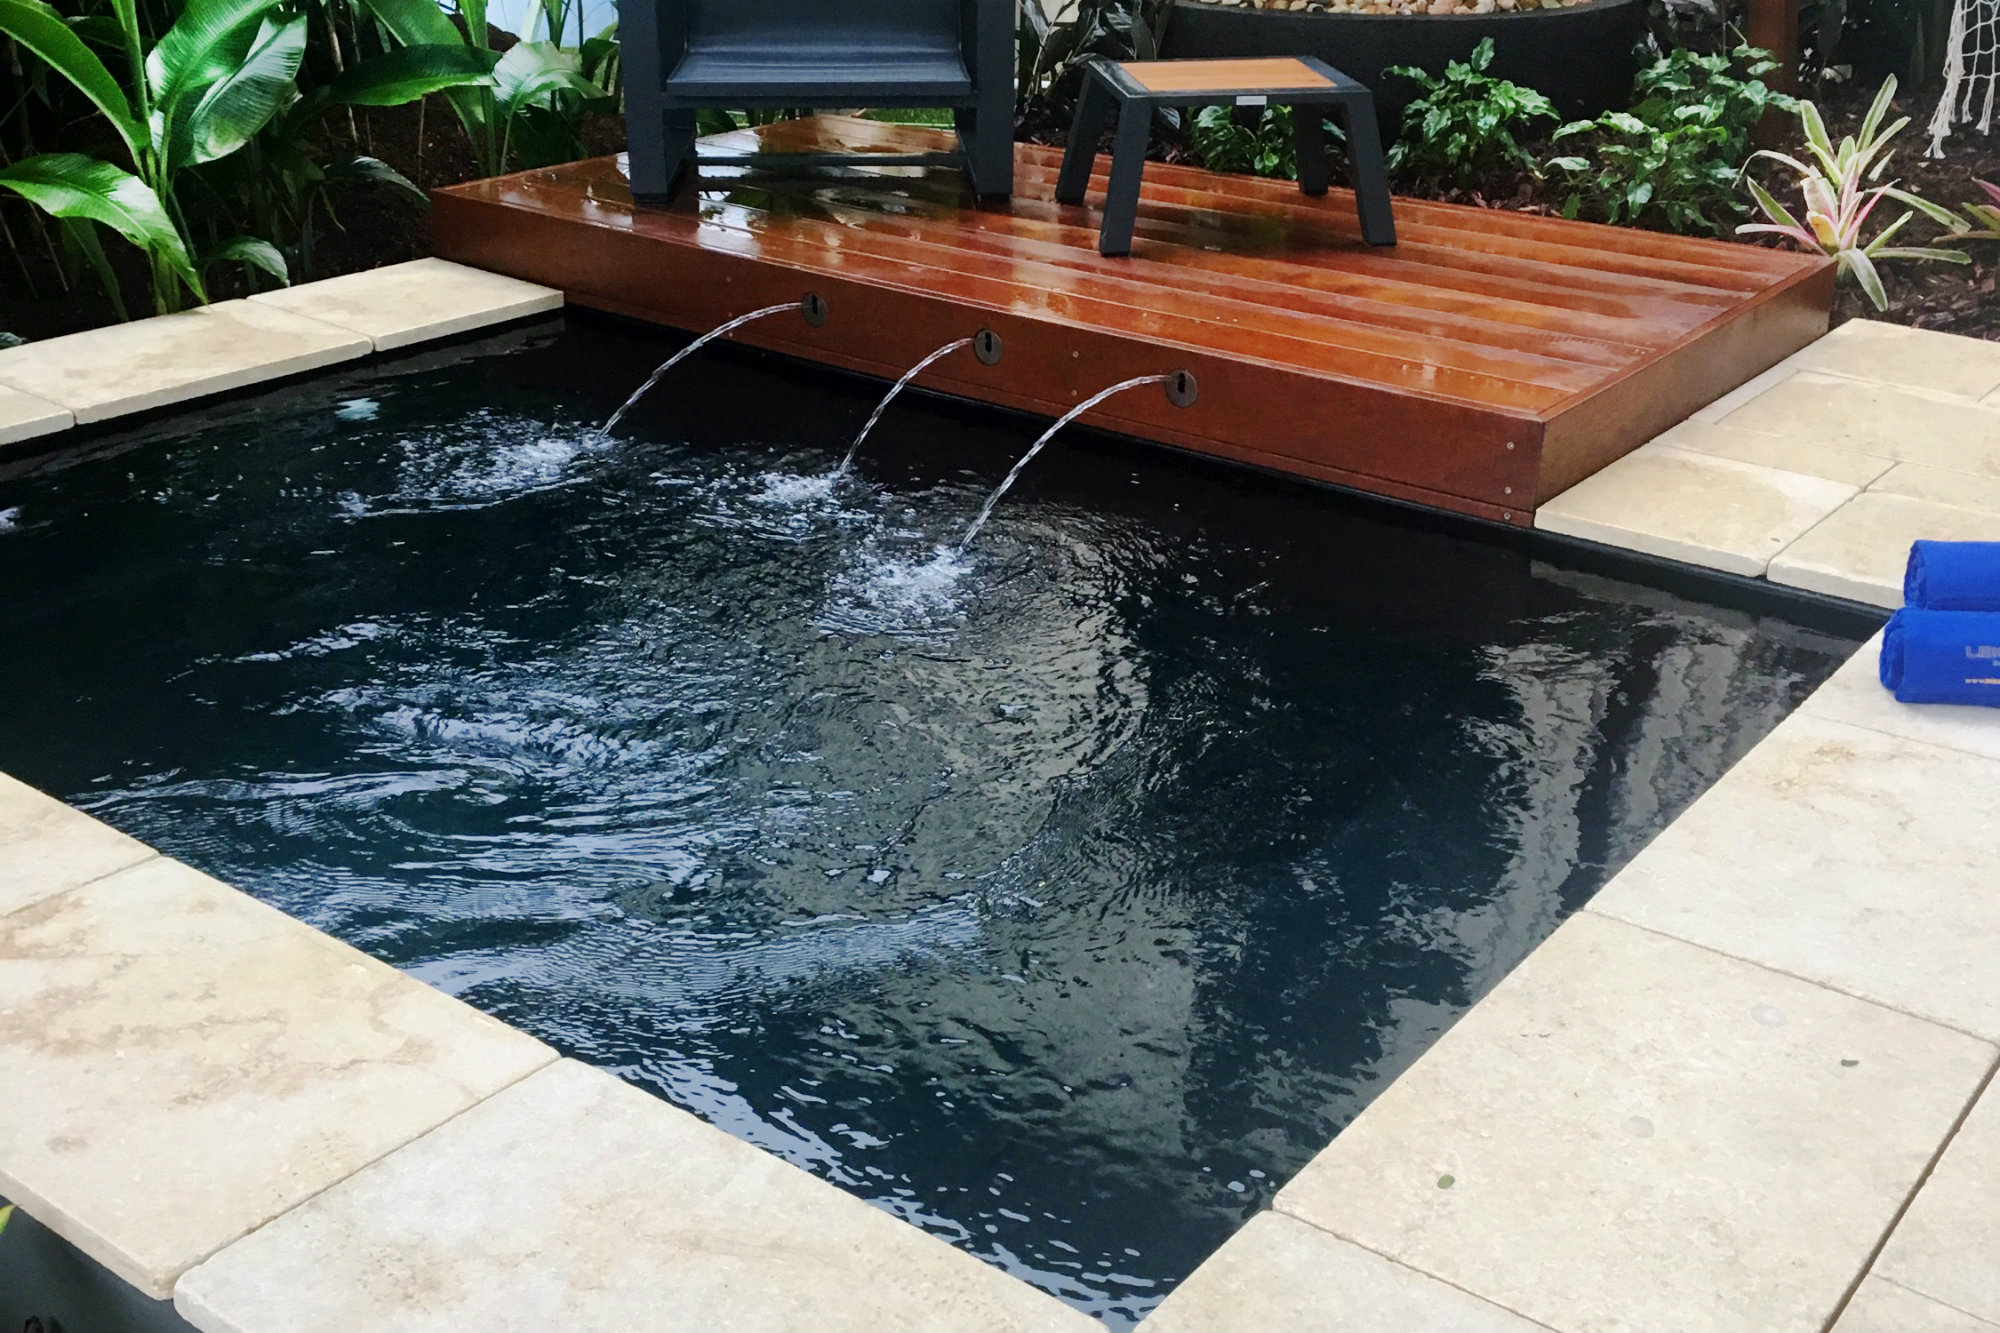 Leisure Pools New Fiji Plunge Took Inspiration From